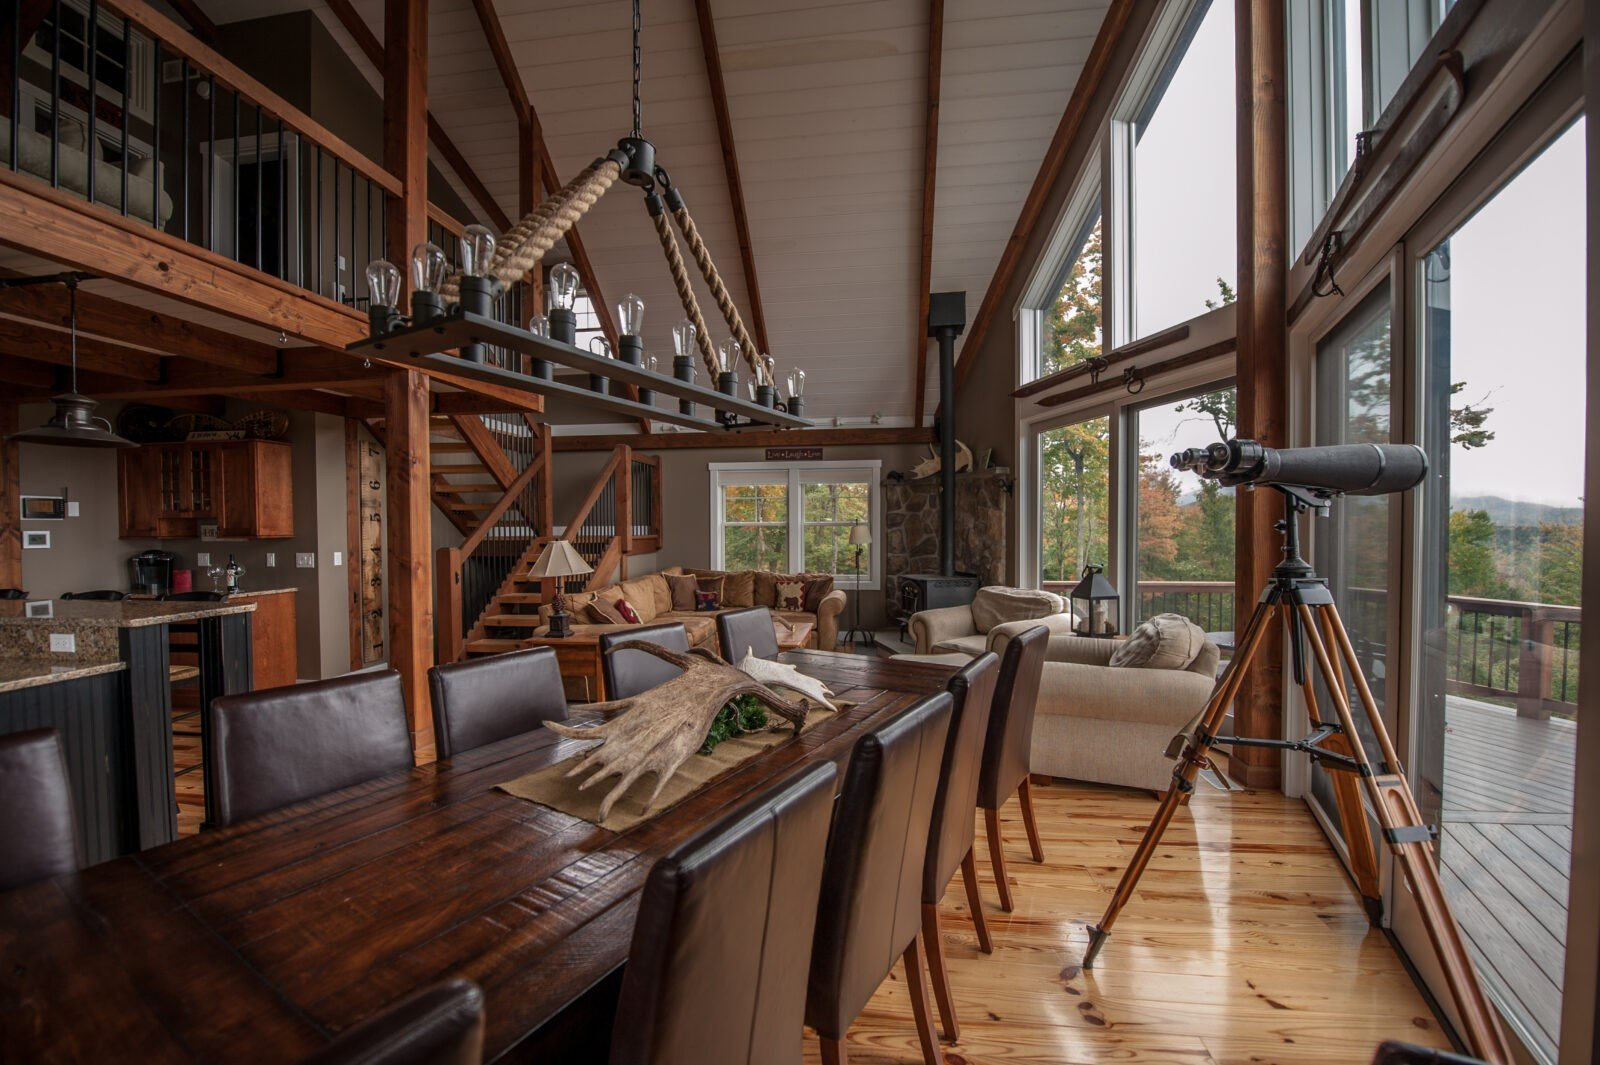 Moose Ridge Mountain Lodge - Photography by Stefanie Martin of Northpeak Design